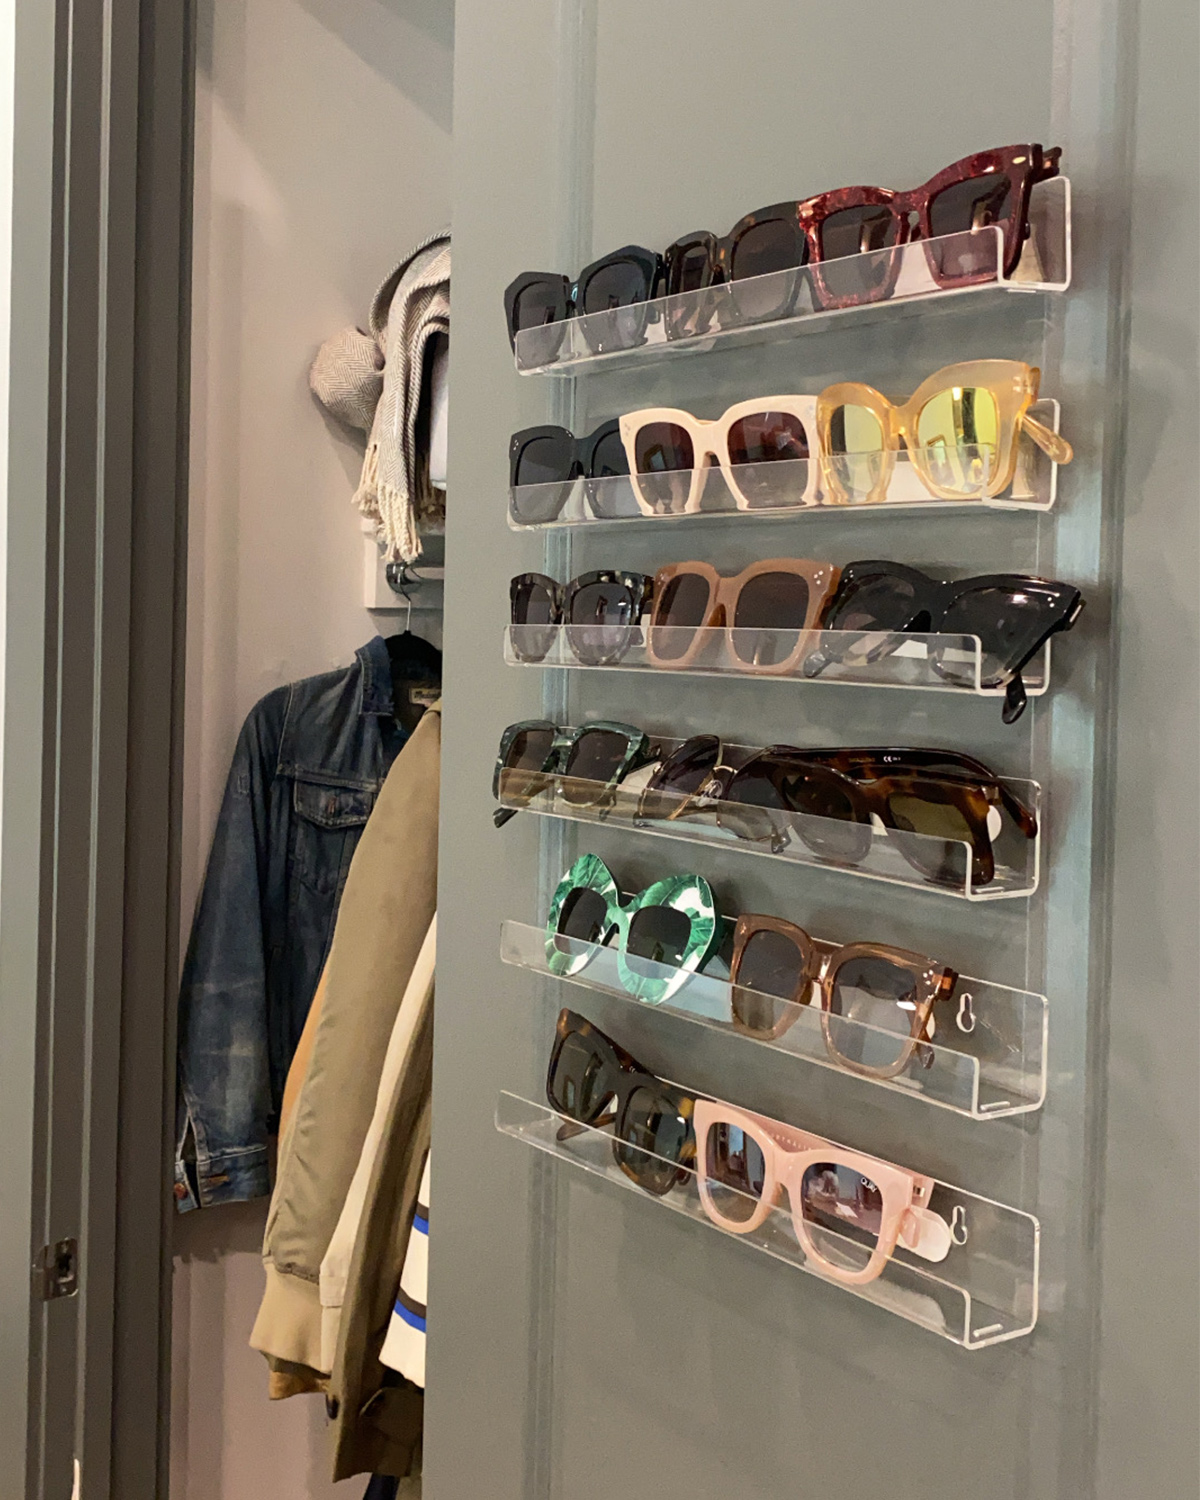 Sunglass Storage | This Weeks Good Things 4.19.21